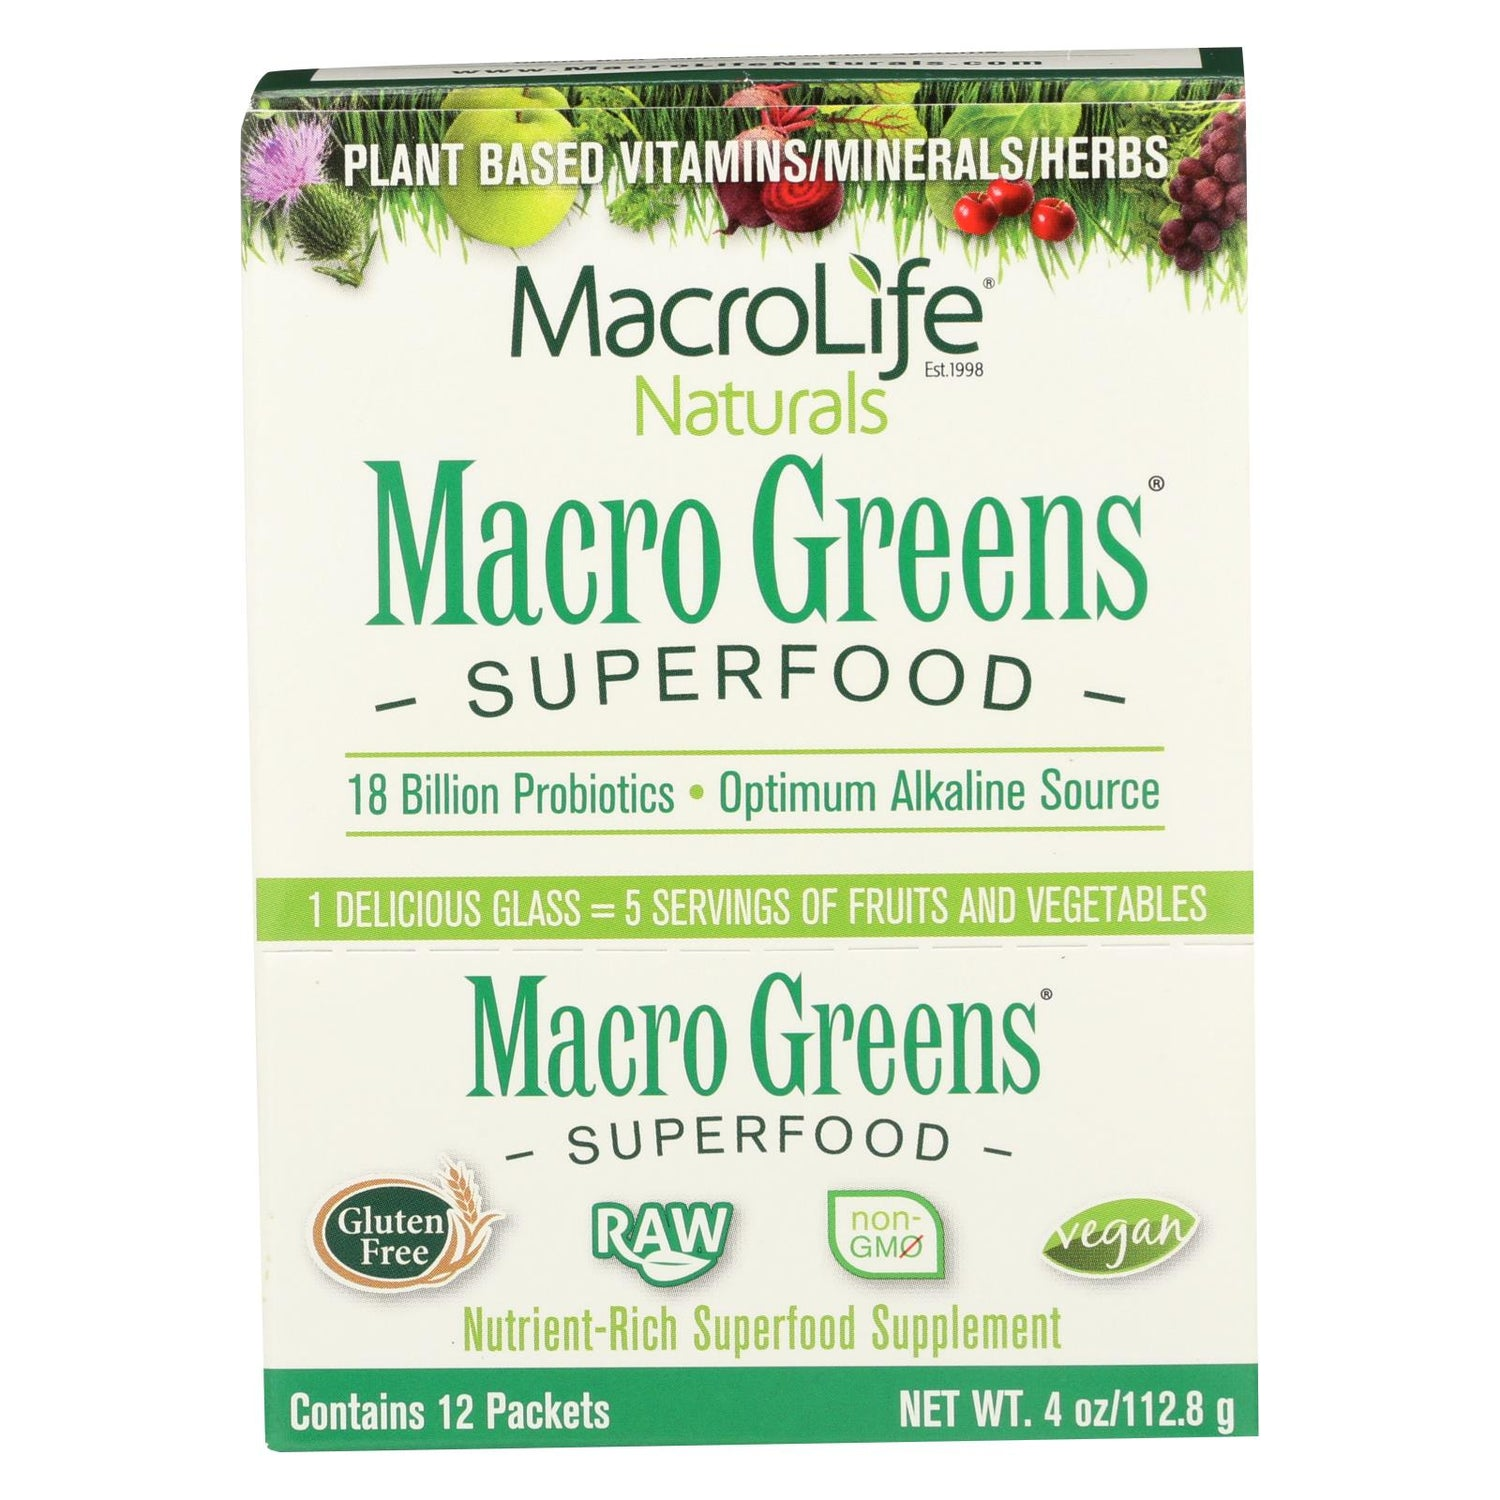 Macrolife Naturals Macro Greens Original - 12 Packets - 4 Oz